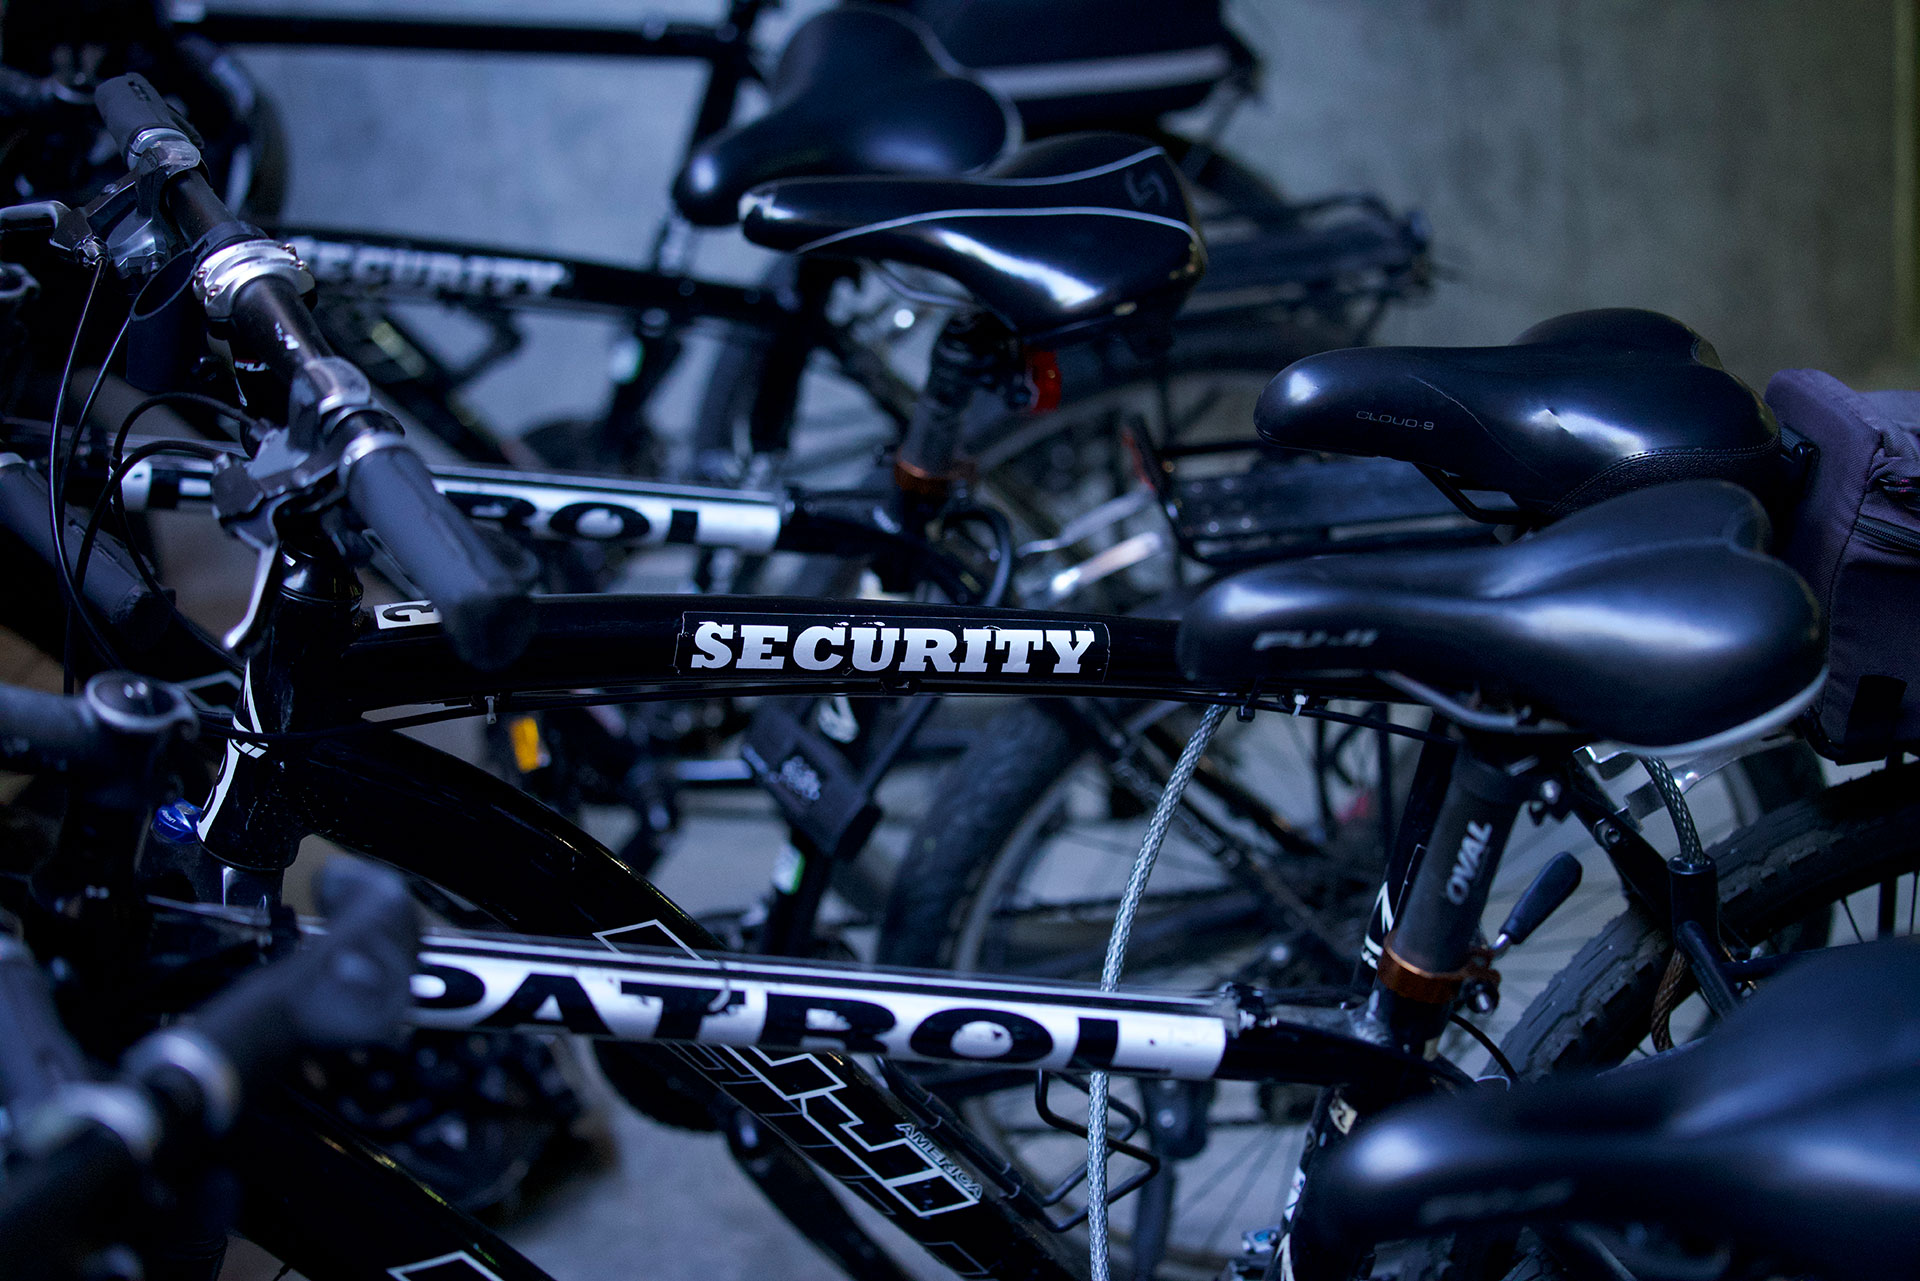 security bike